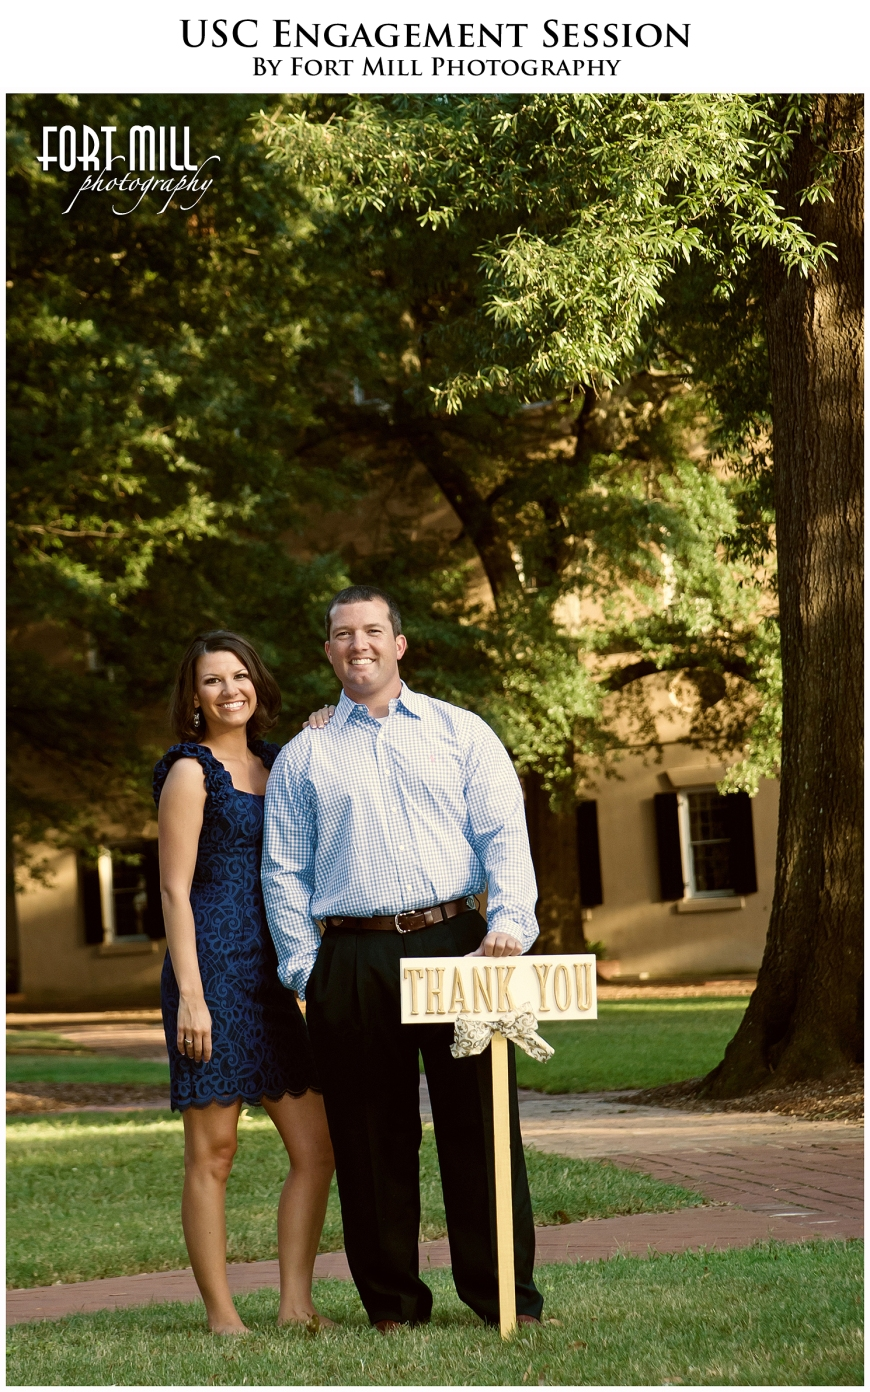 USC Engagement Session Thank You